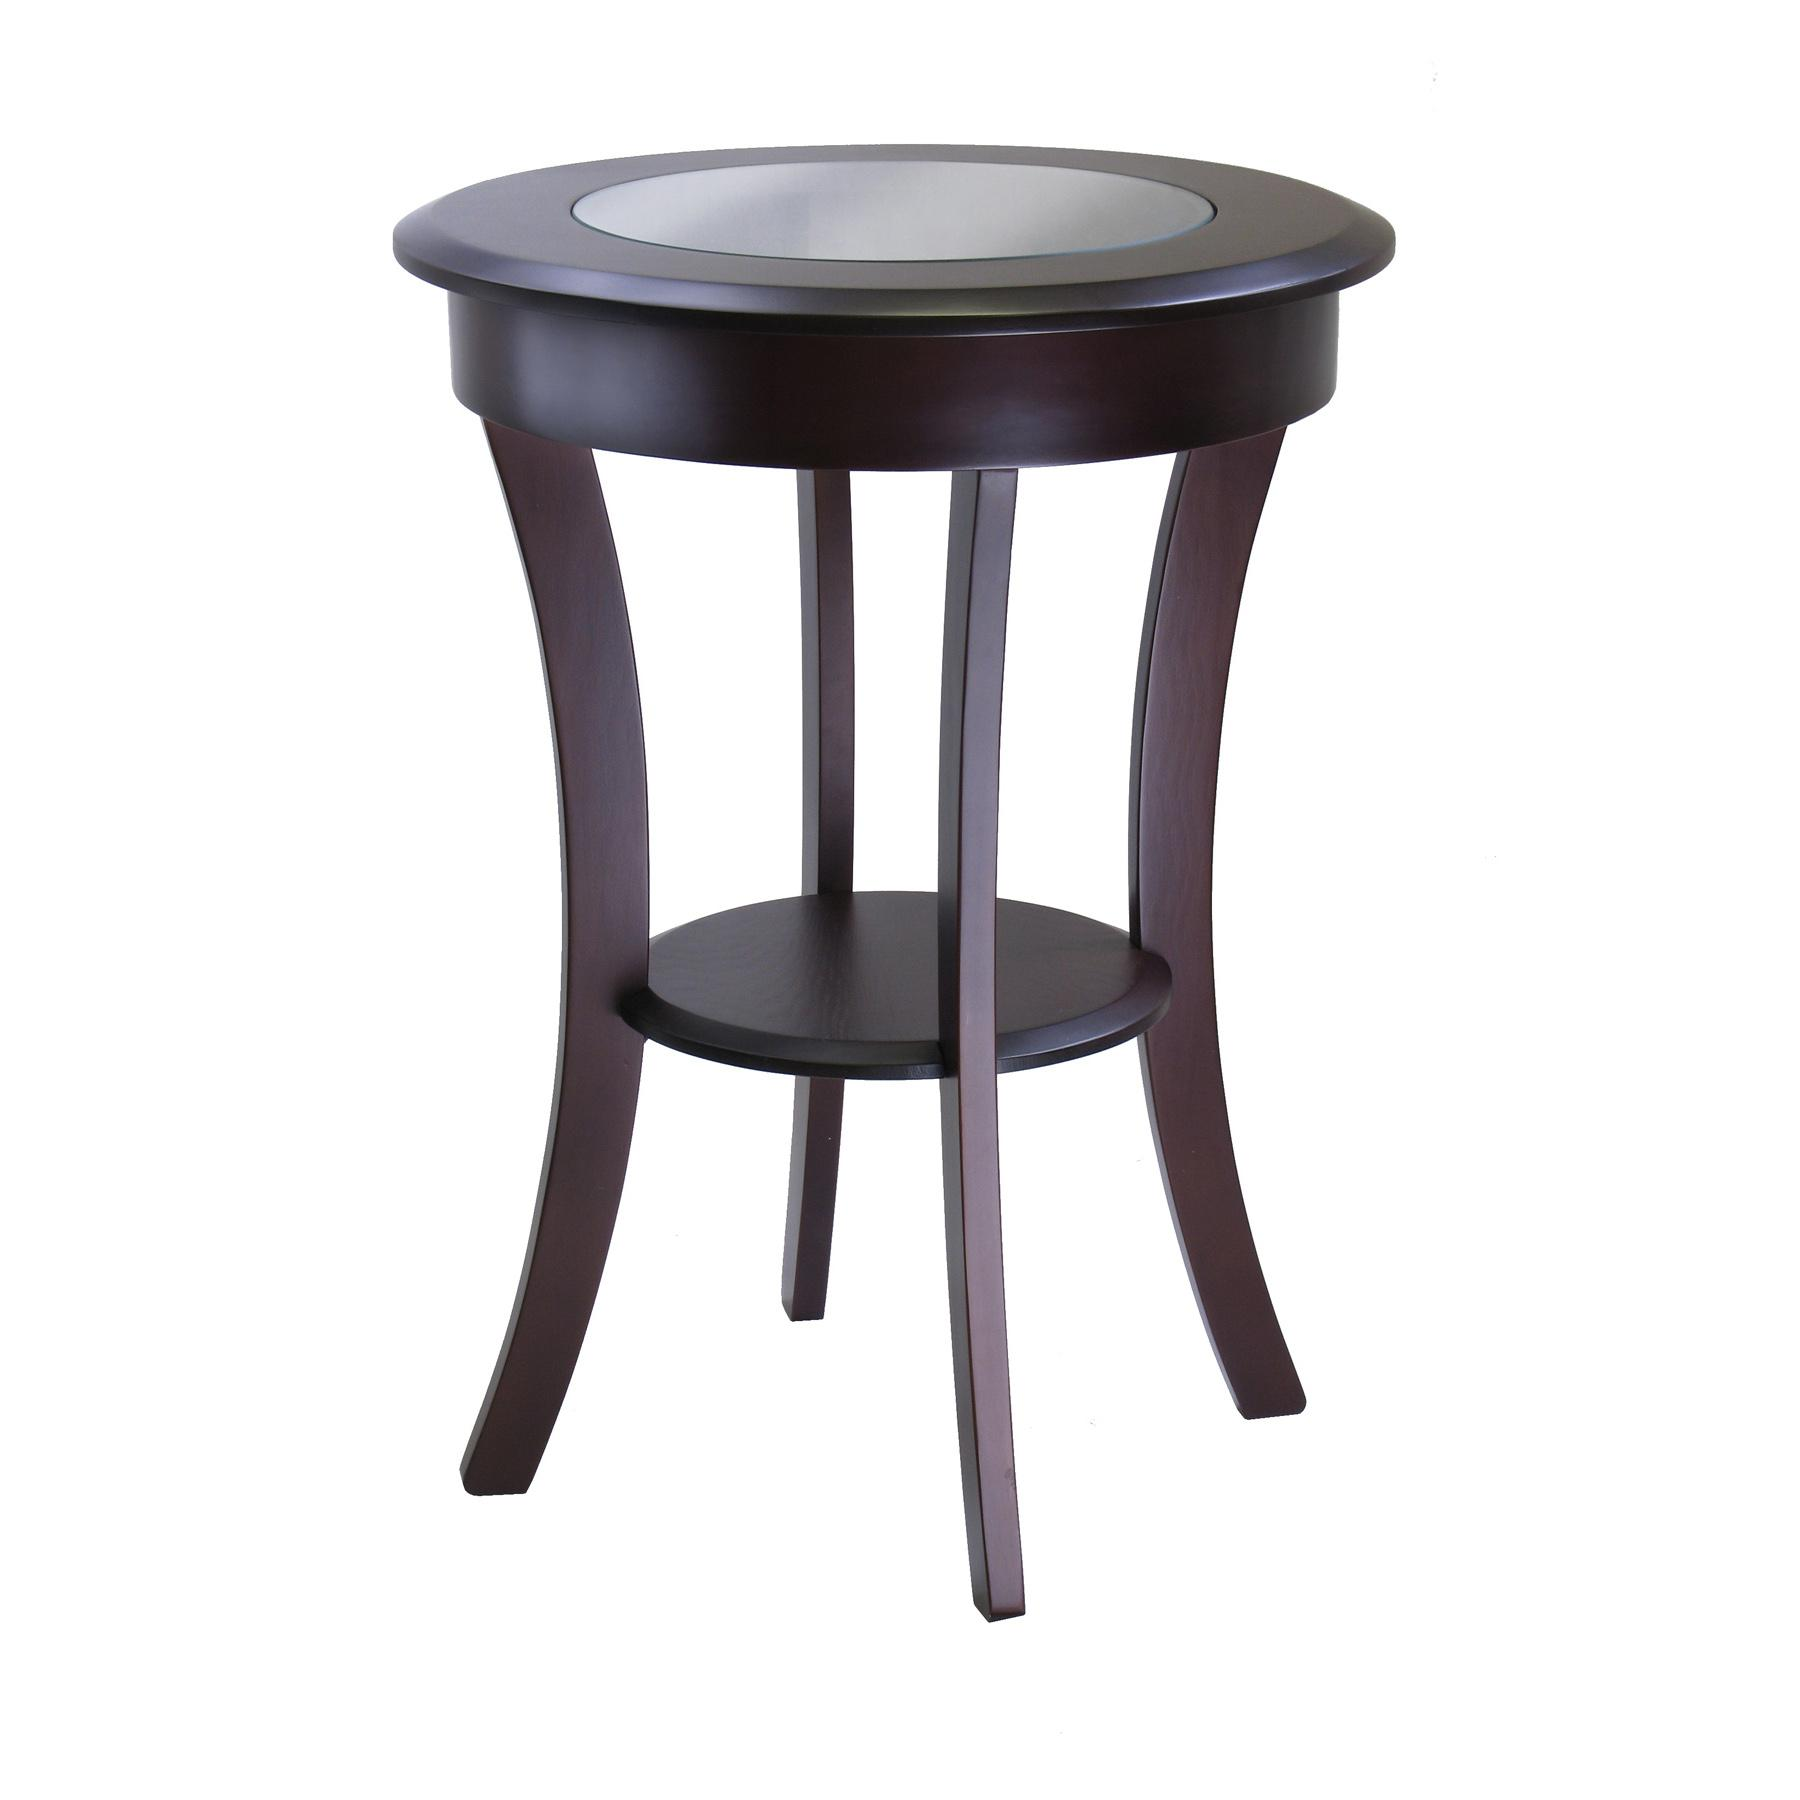 surprising inch tall round accent table decorating patio cover rentals chairs rent tablecloth and tables ideas small for stools covers kitchen full size mirror with outdoor